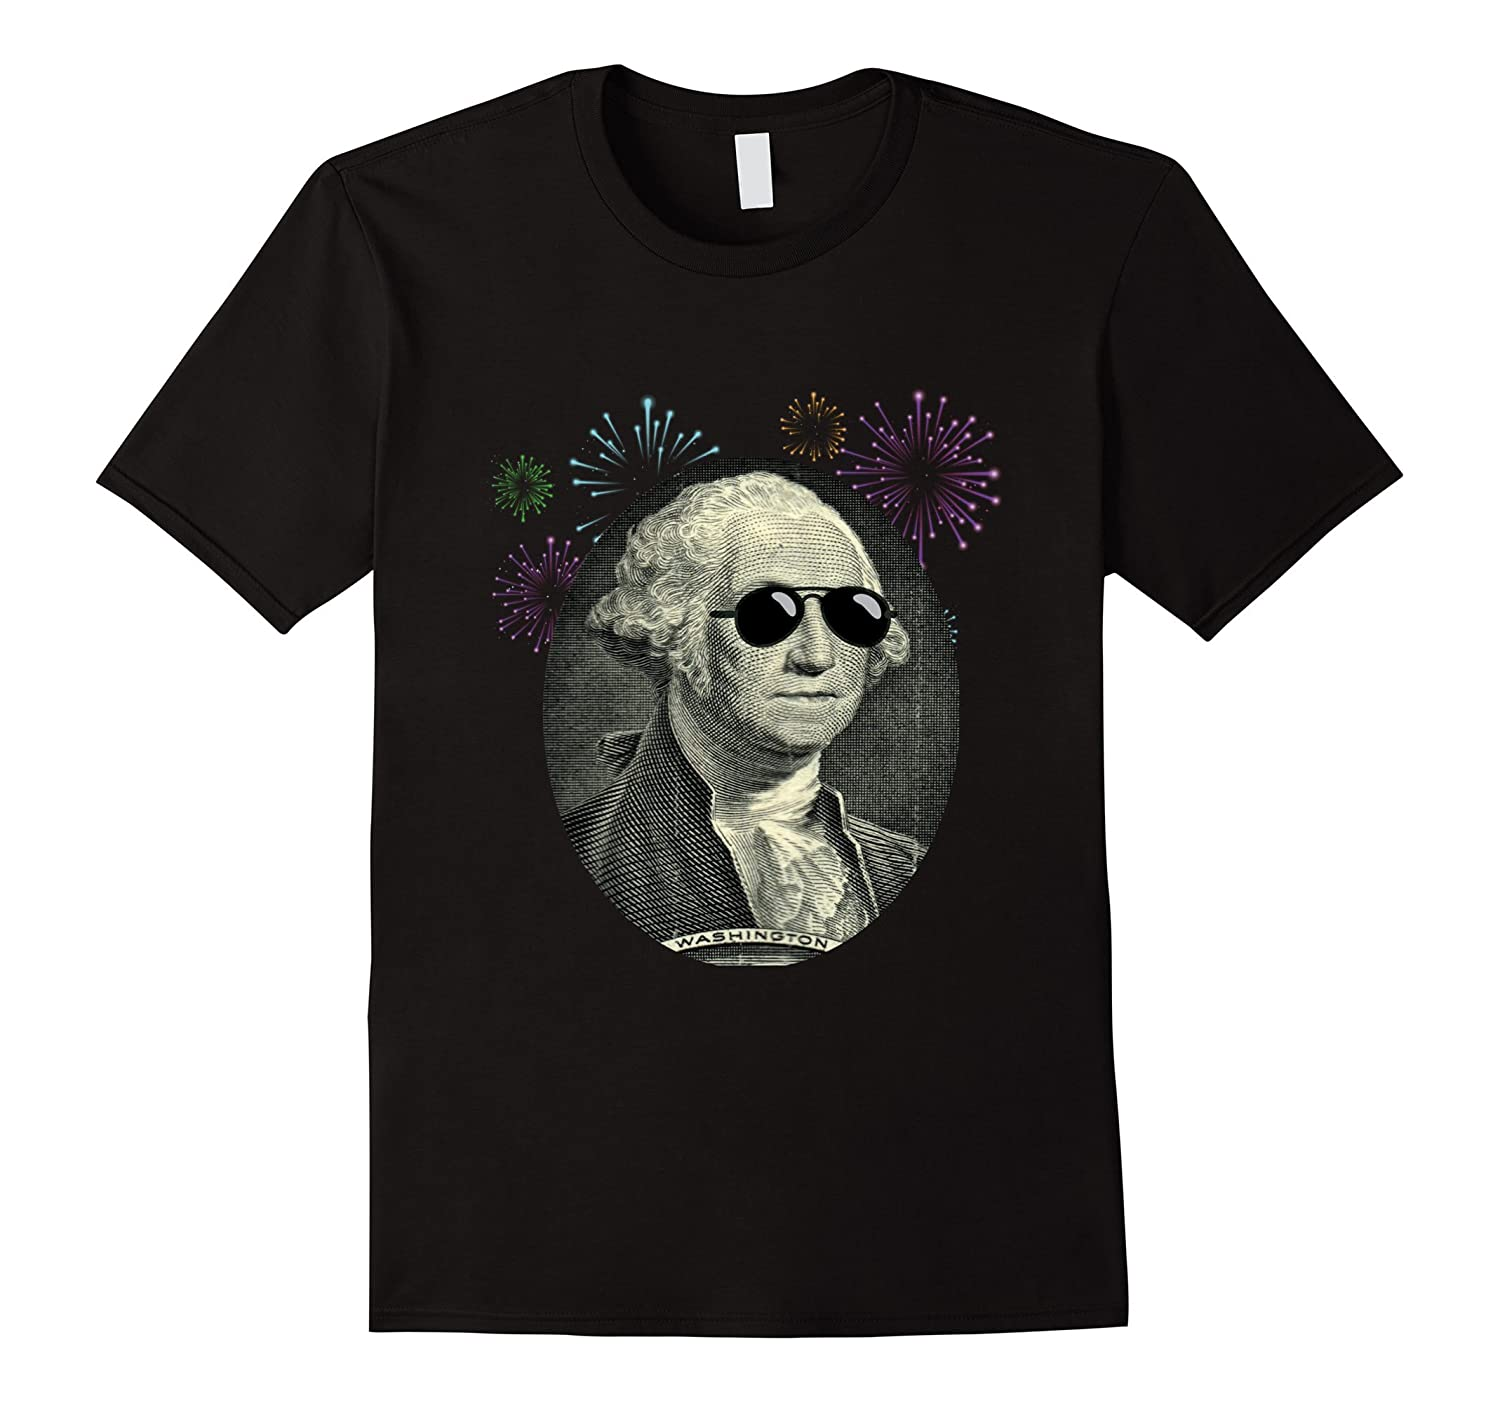 Cool George Washington with Sunglasses T Shirt 4th July